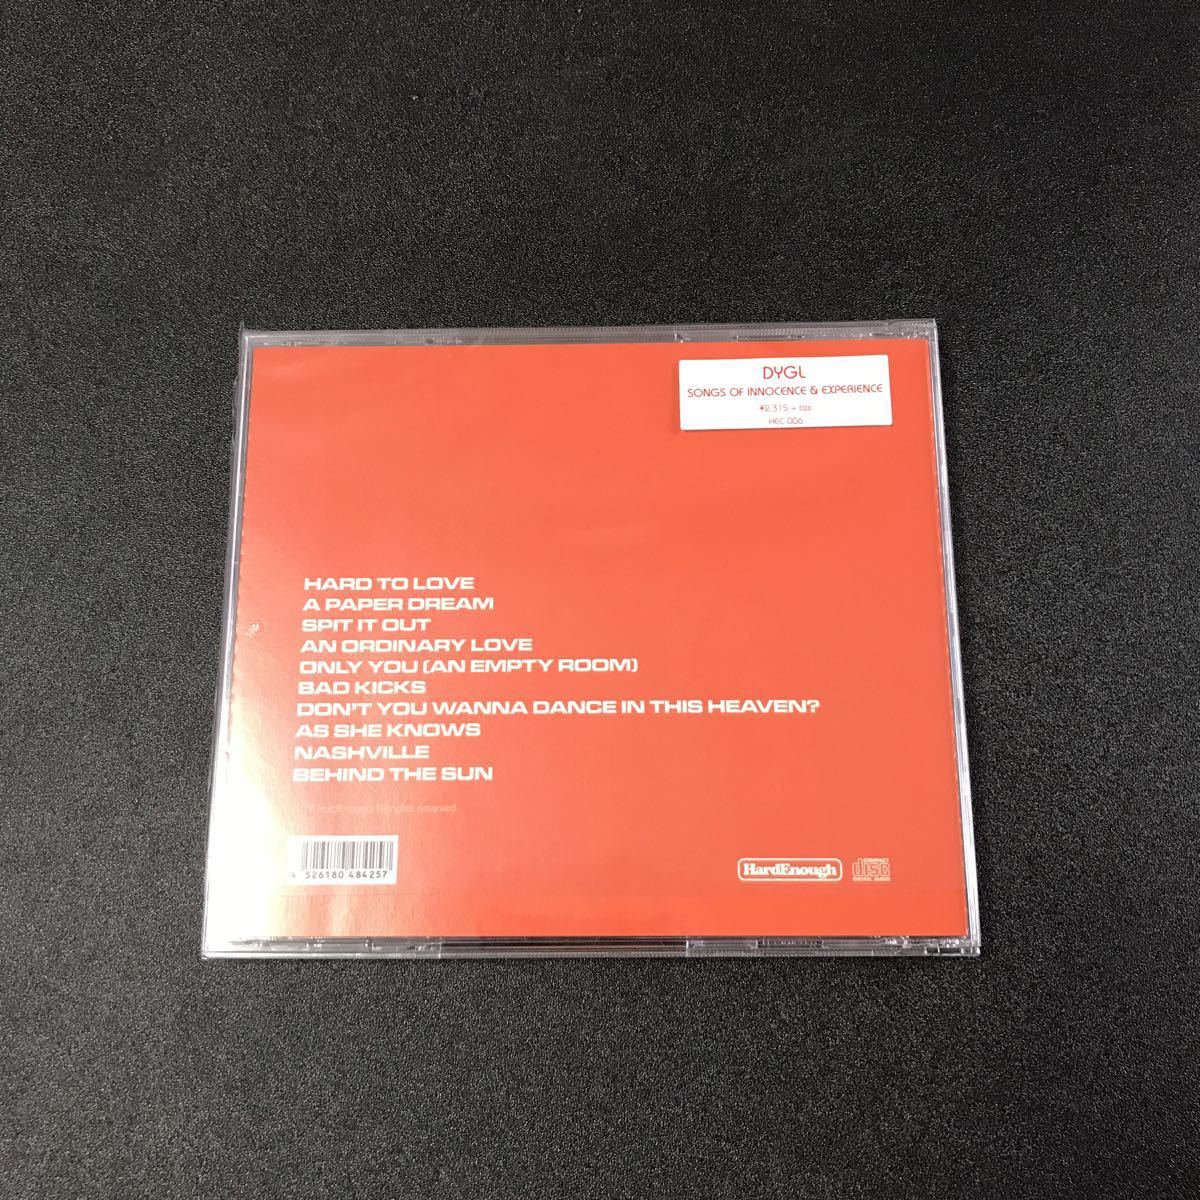 DYGL「SONGS OF INNOCENCE & EXPERIENCE」TOWER RECORDS特典付き_画像3